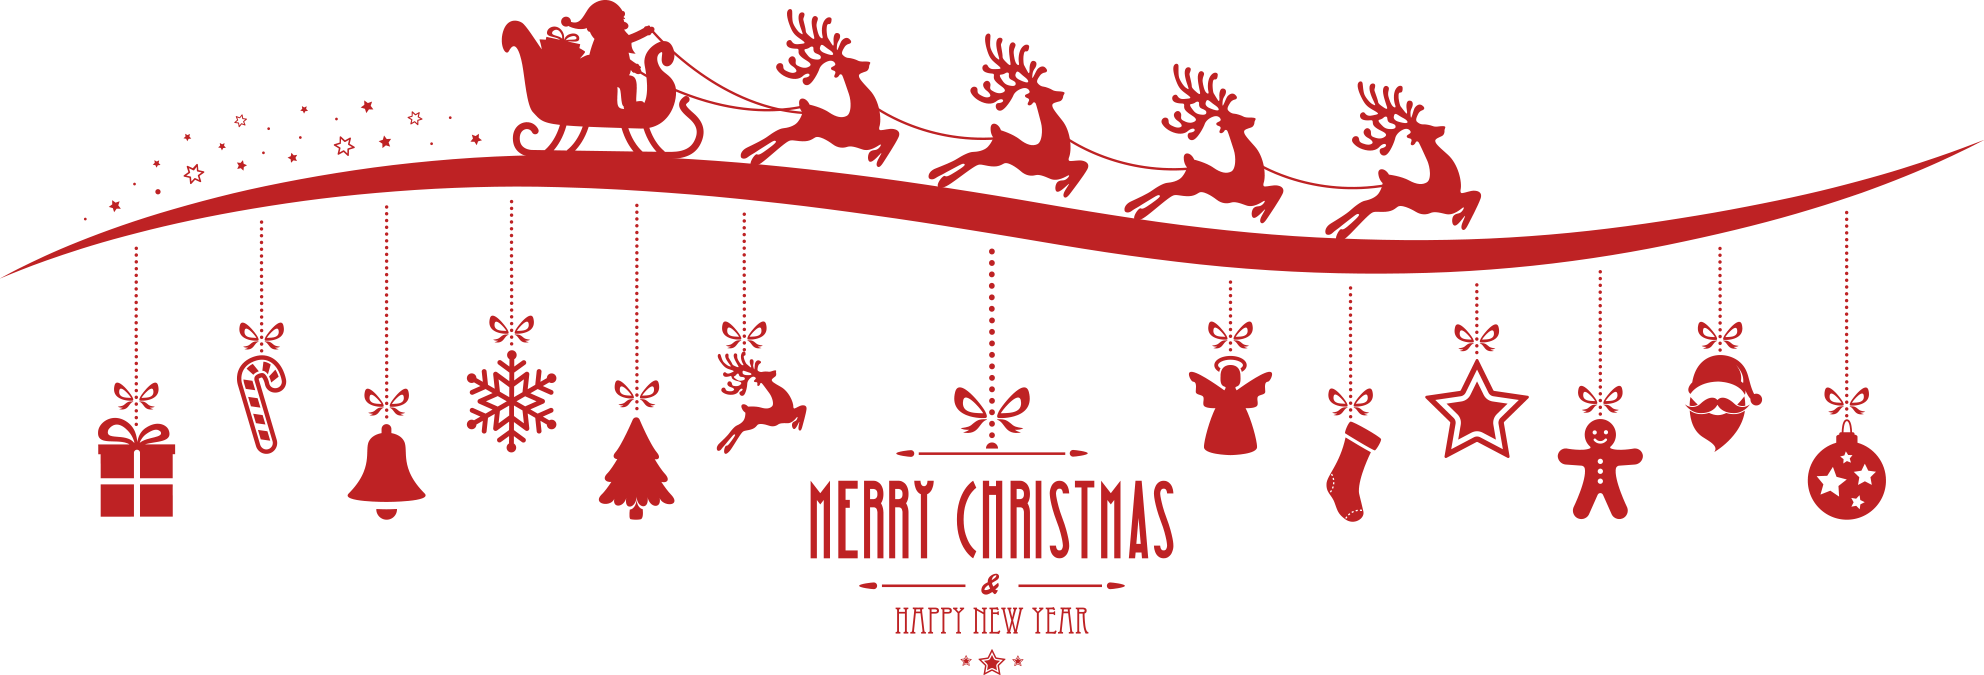 Santa claus signature clipart images gallery for free.